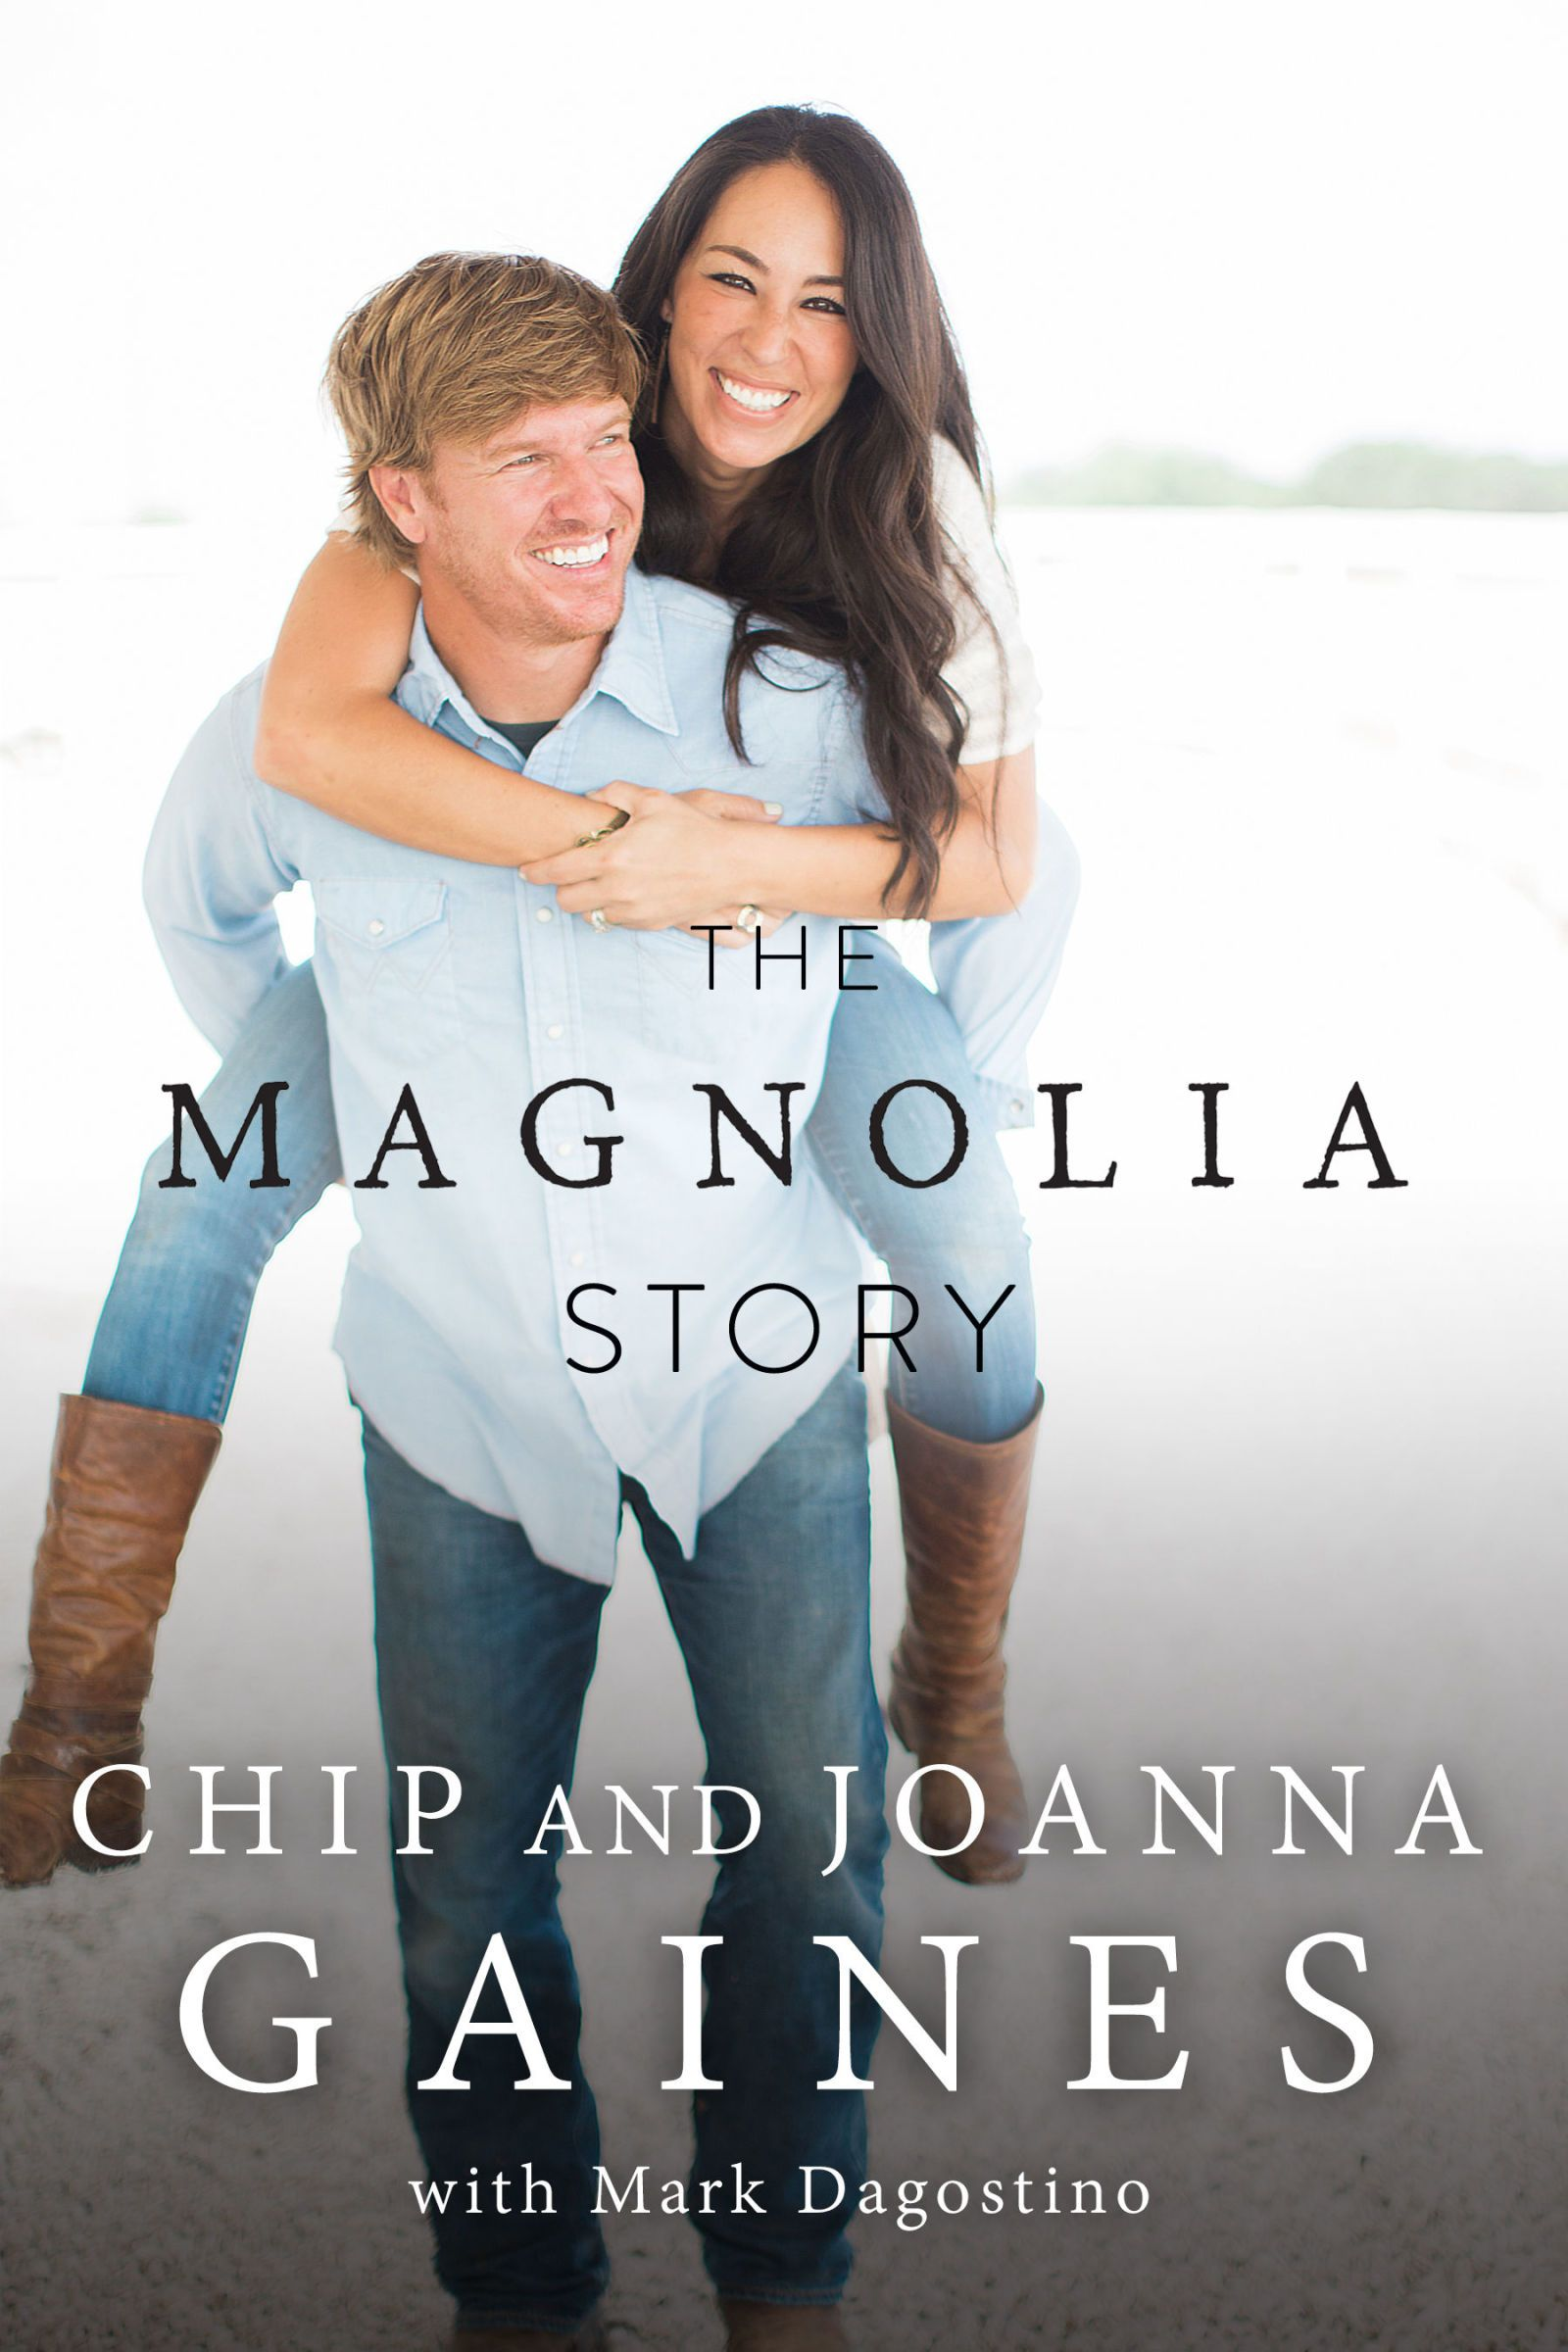 Get A Sneak Peek Of Chip And Joanna Gaines New Book The